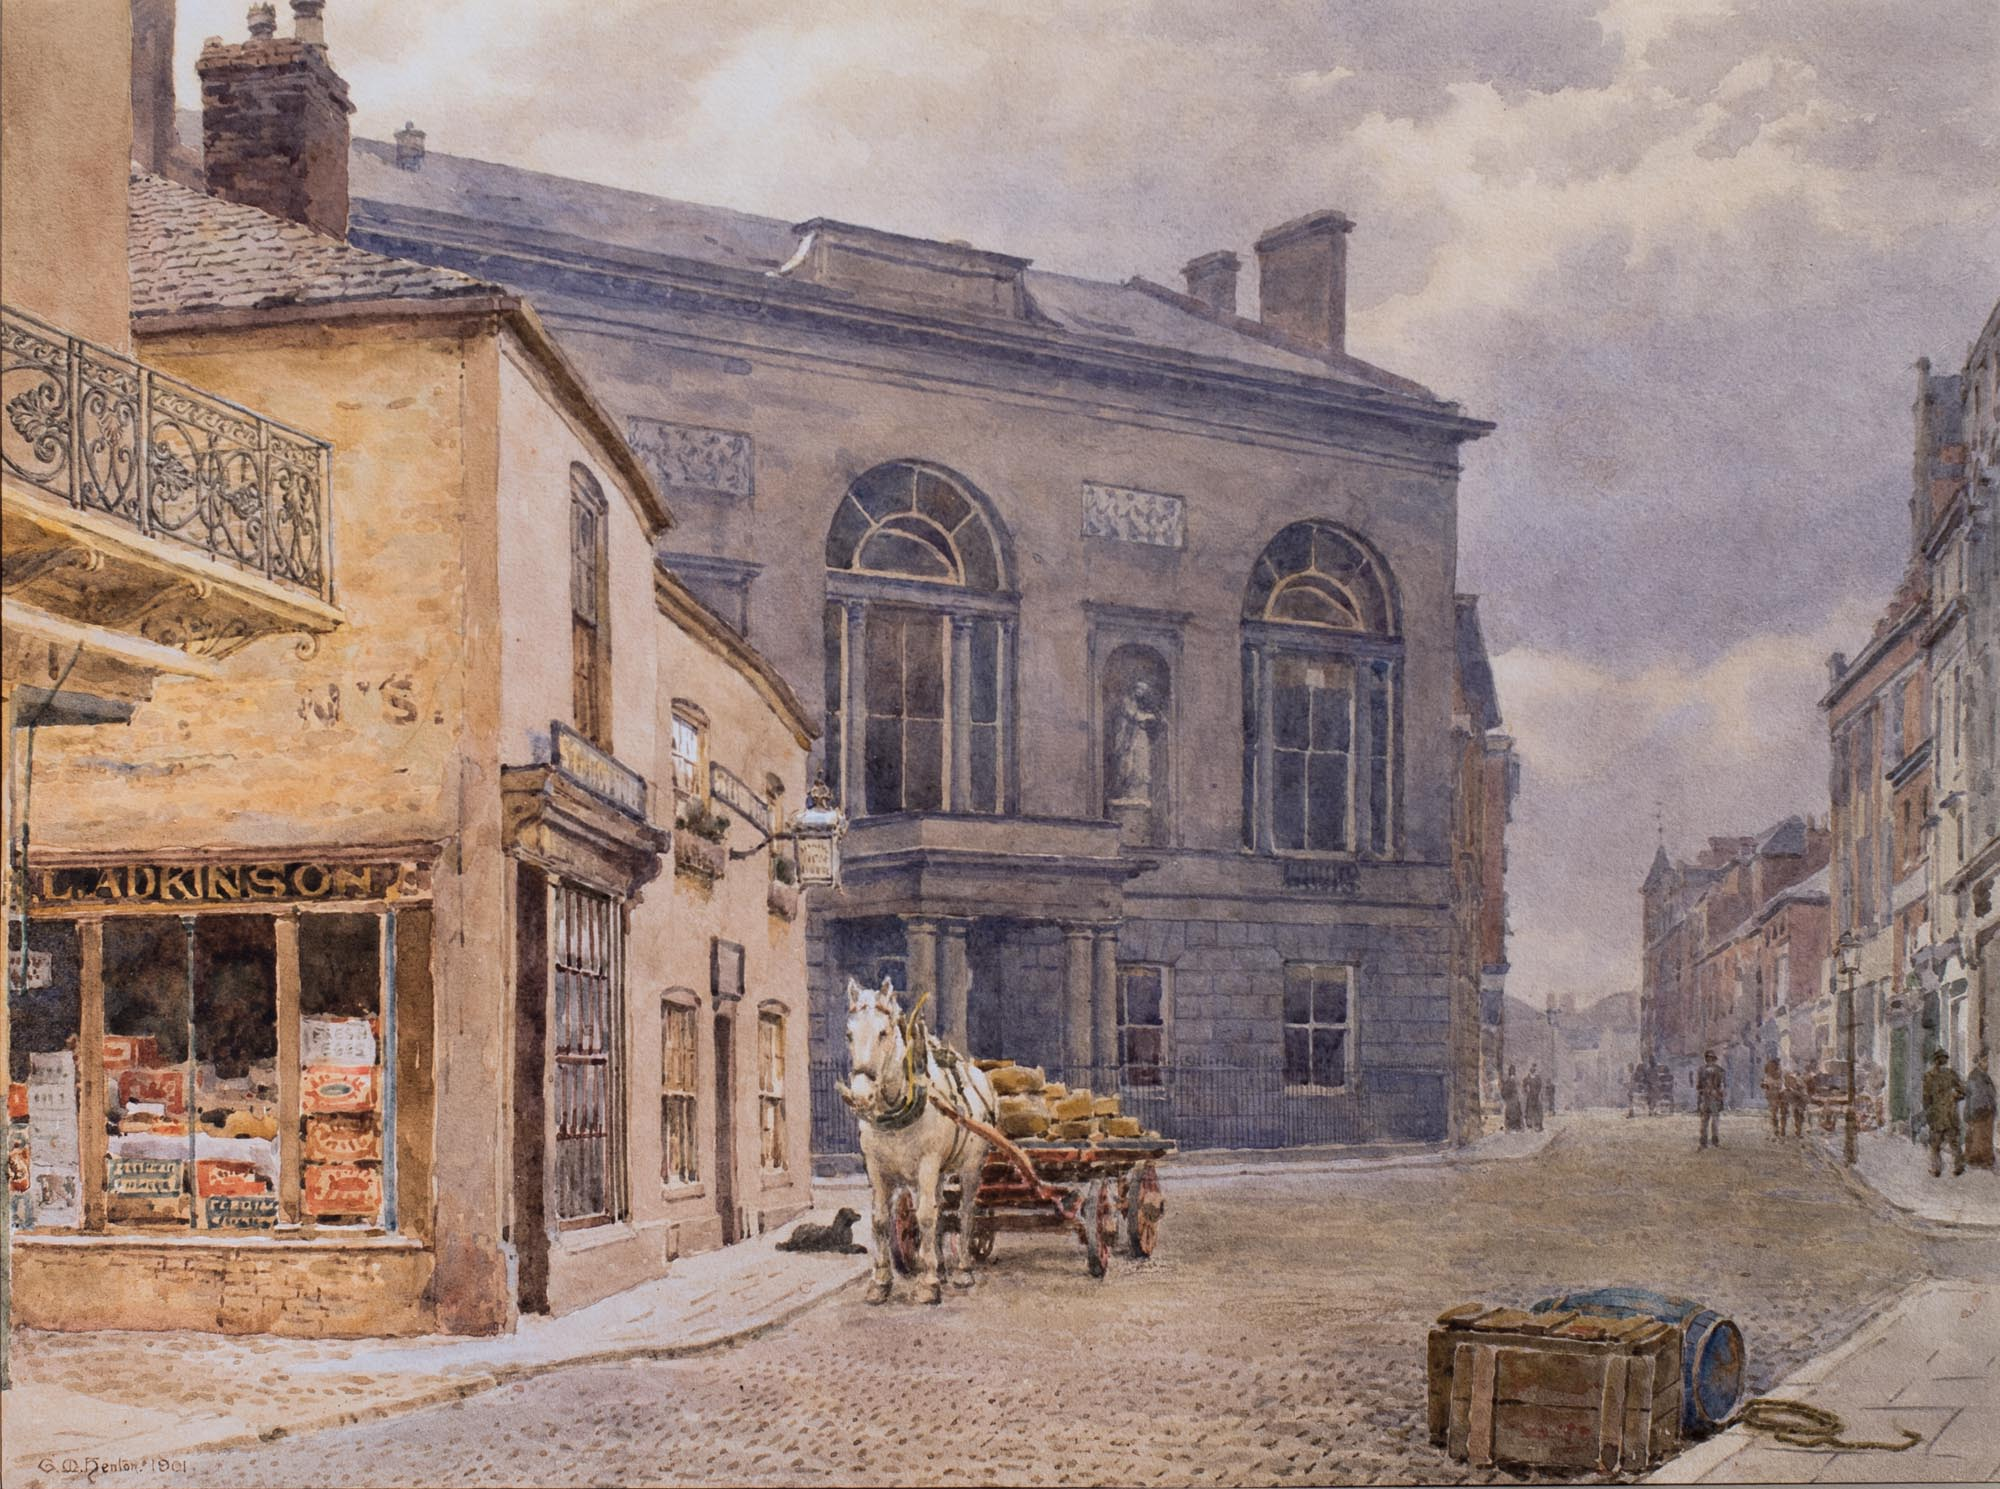 George M Henton County Assebly Rooms Old Saracens Head